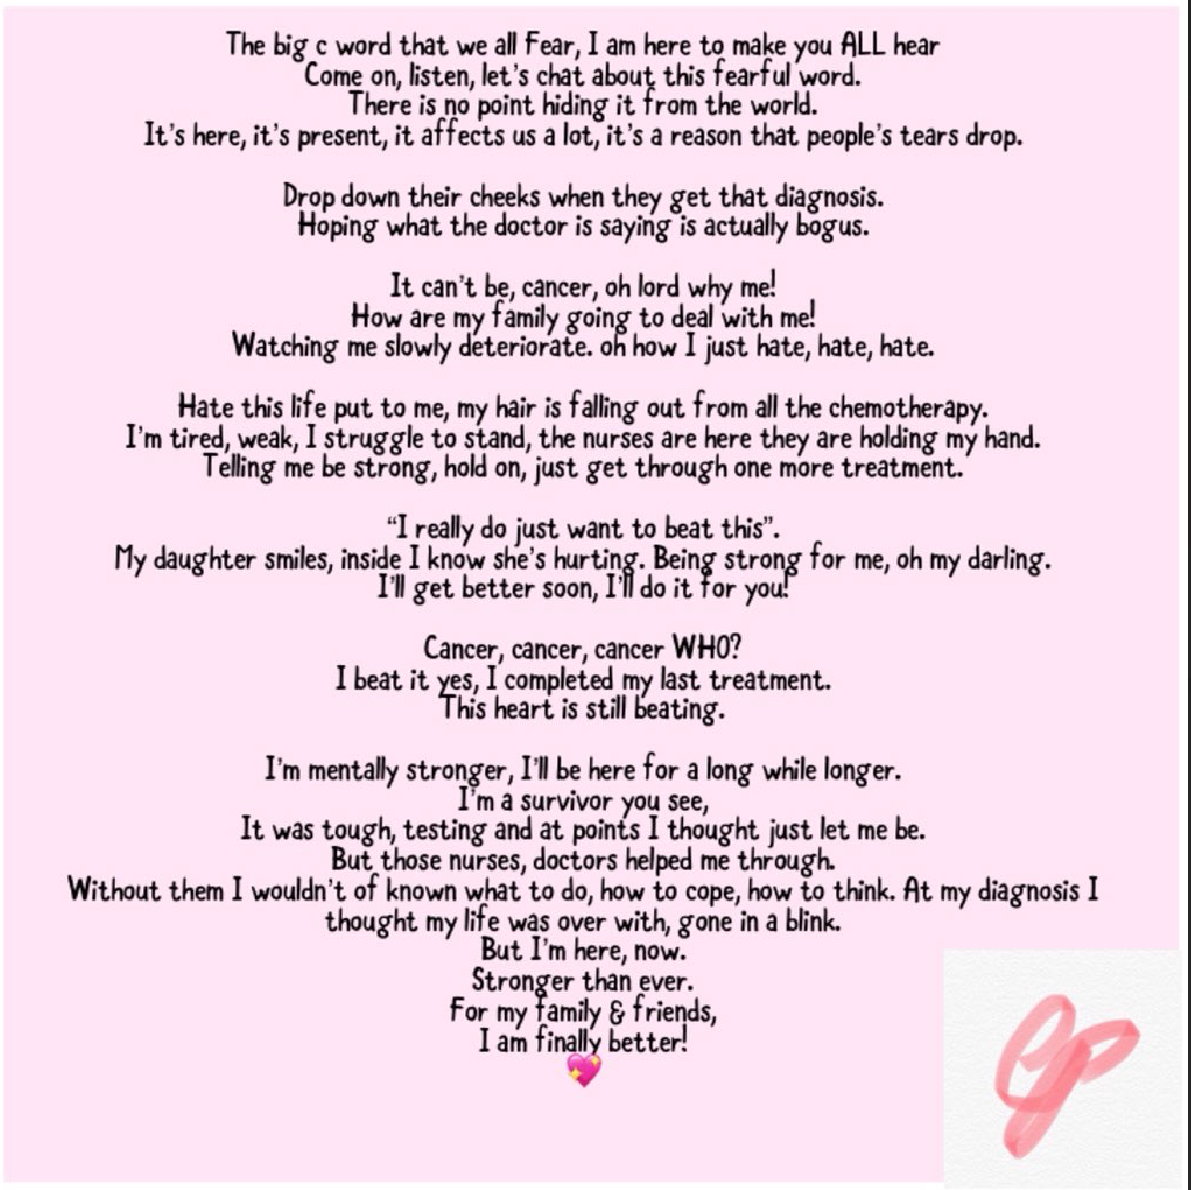 My daughter hates me poem